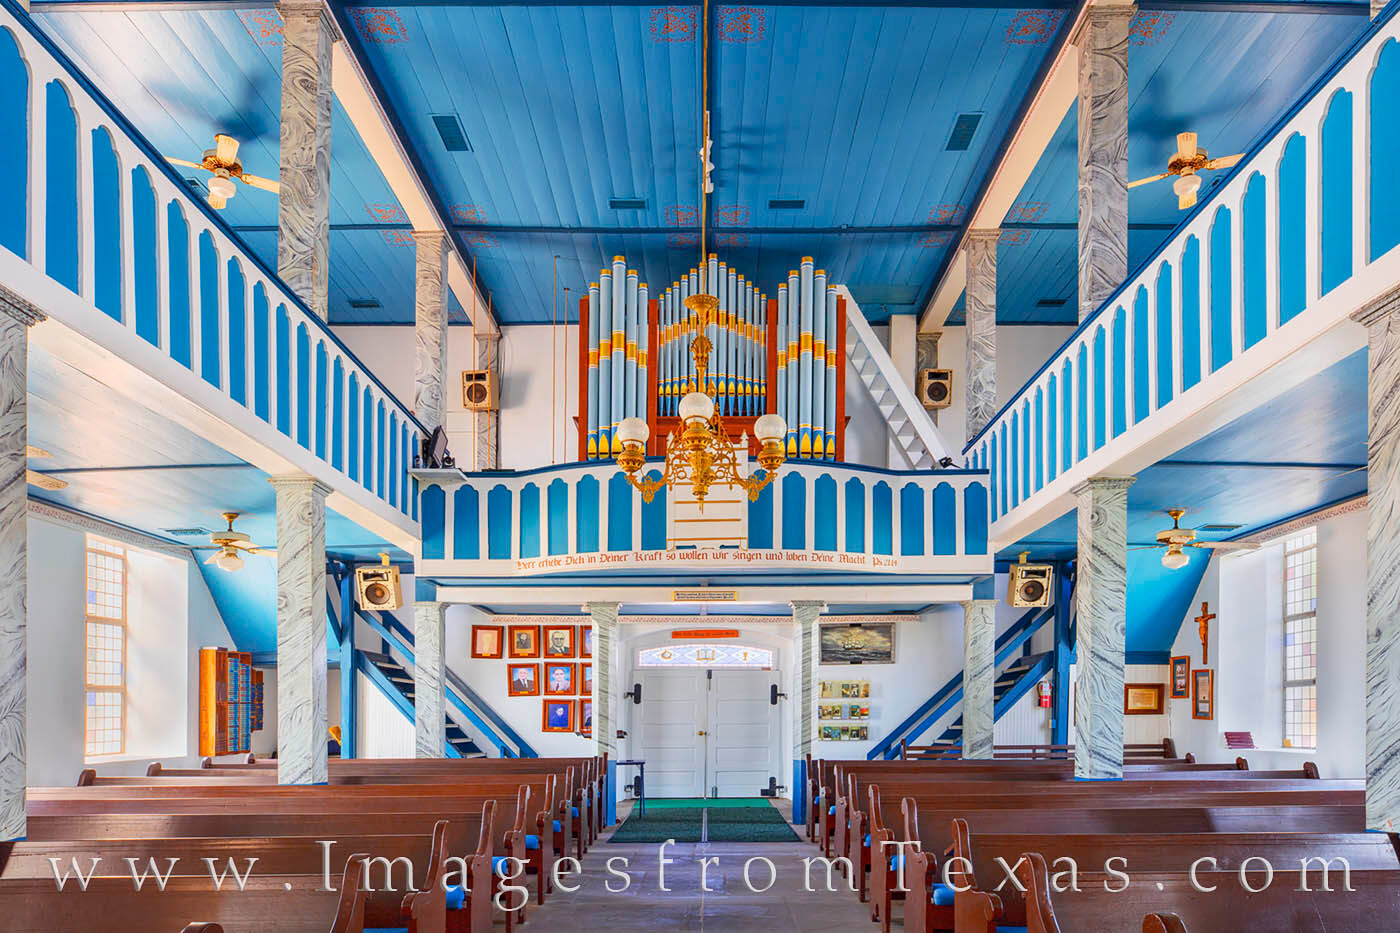 This is St. Paul Lutheran Church from the lower floor near the alter. As one of the Painted Churches of Texas, the original structure...